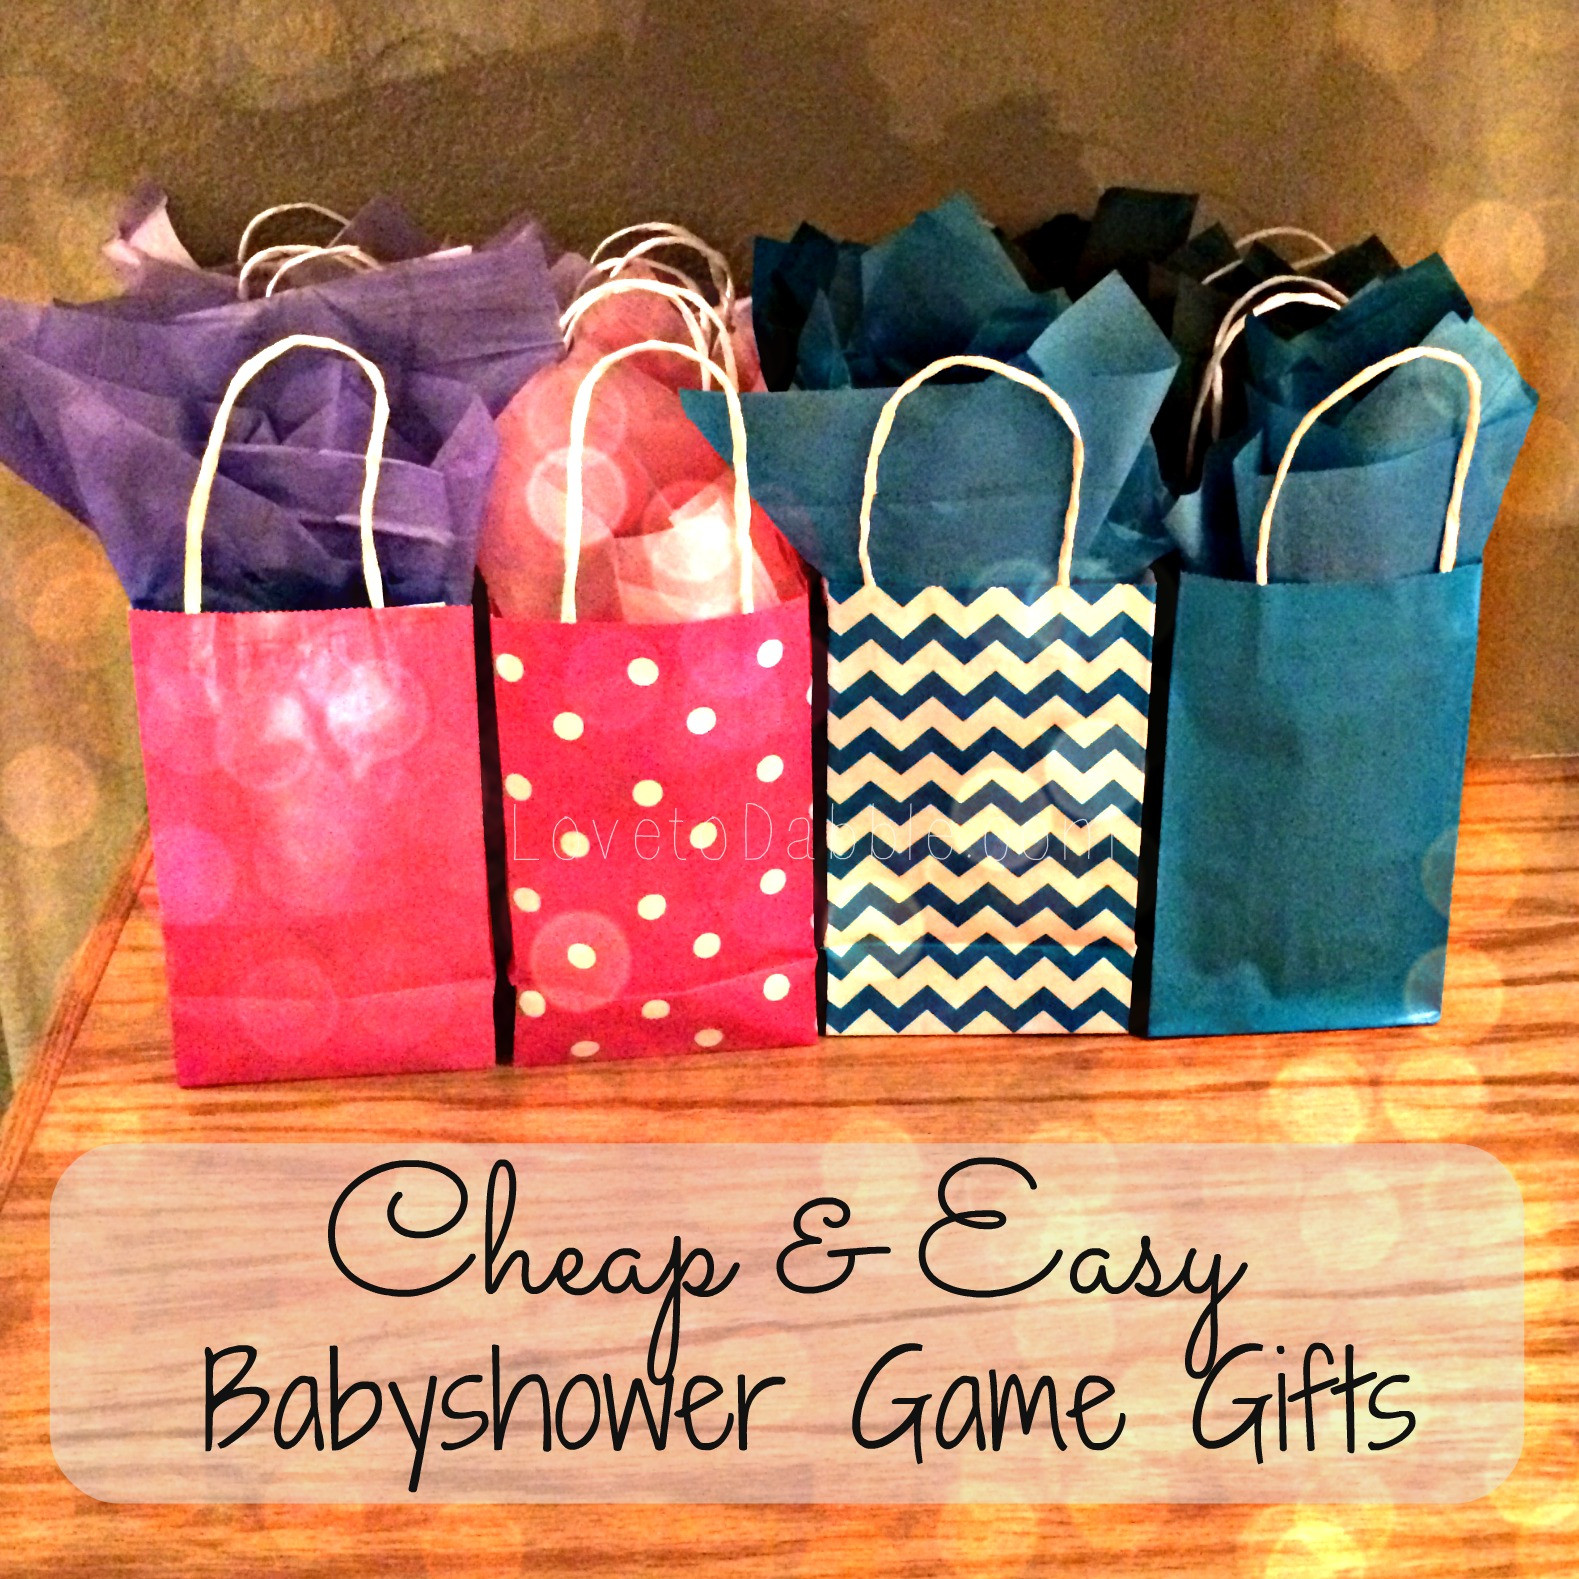 Best ideas about Baby Shower Gift Ideas For Games . Save or Pin List Baby Shower Image Now.